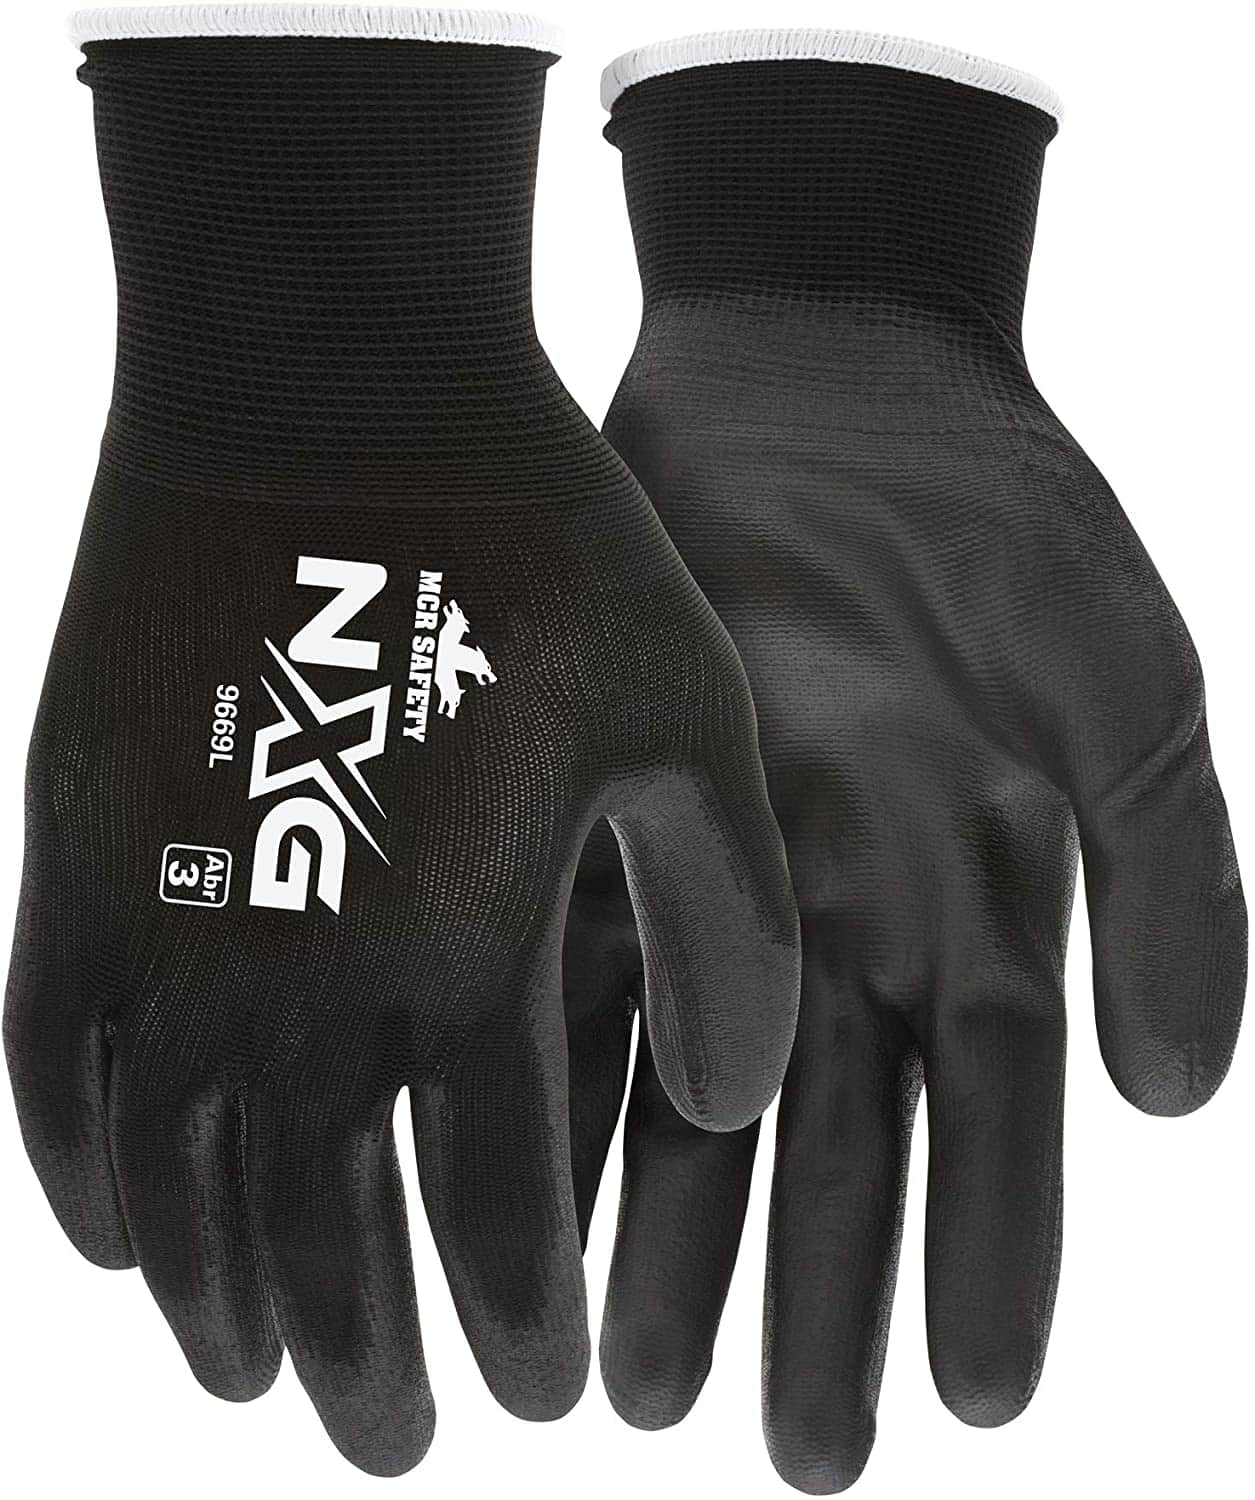 $1.74, MCR Safety 9669L Nylon Knitted Shell MCR Safetys with Black PU Dipped Palm and Fingers, Black, Large, 1-Pair - Work Gloves - Amazon.com